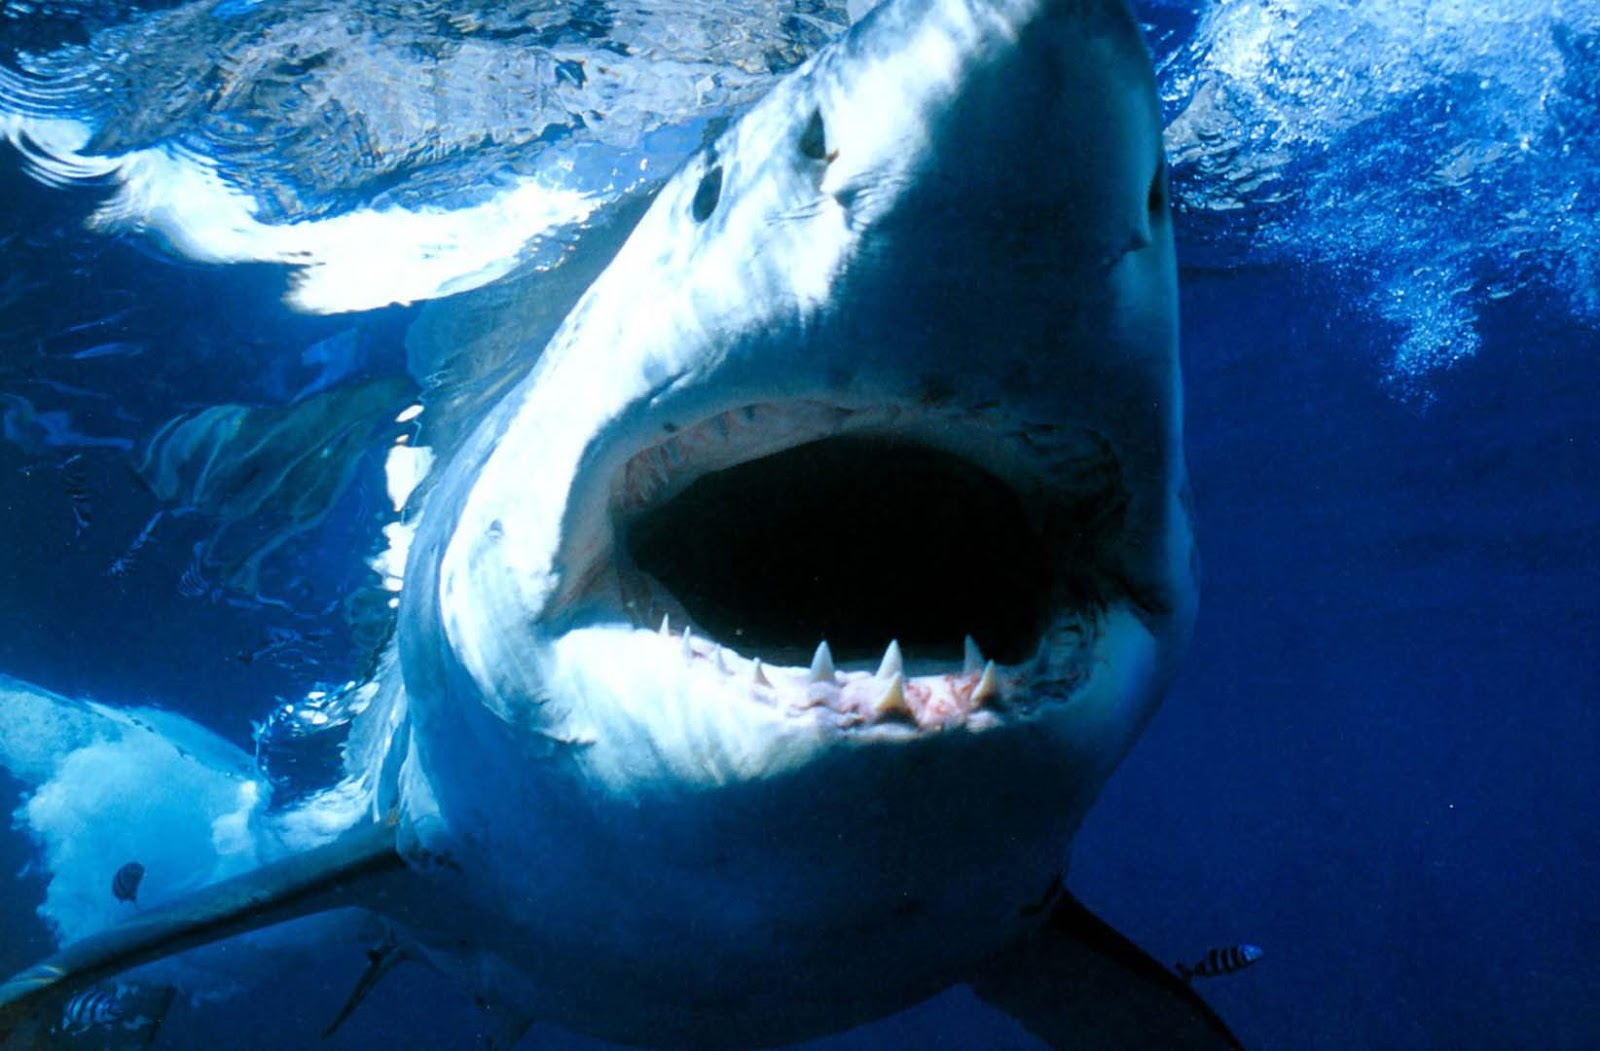 Great White Shark Wallpaper Cute Great White Shark Mouth Hd Wallpapers Images 2013 Top Hd